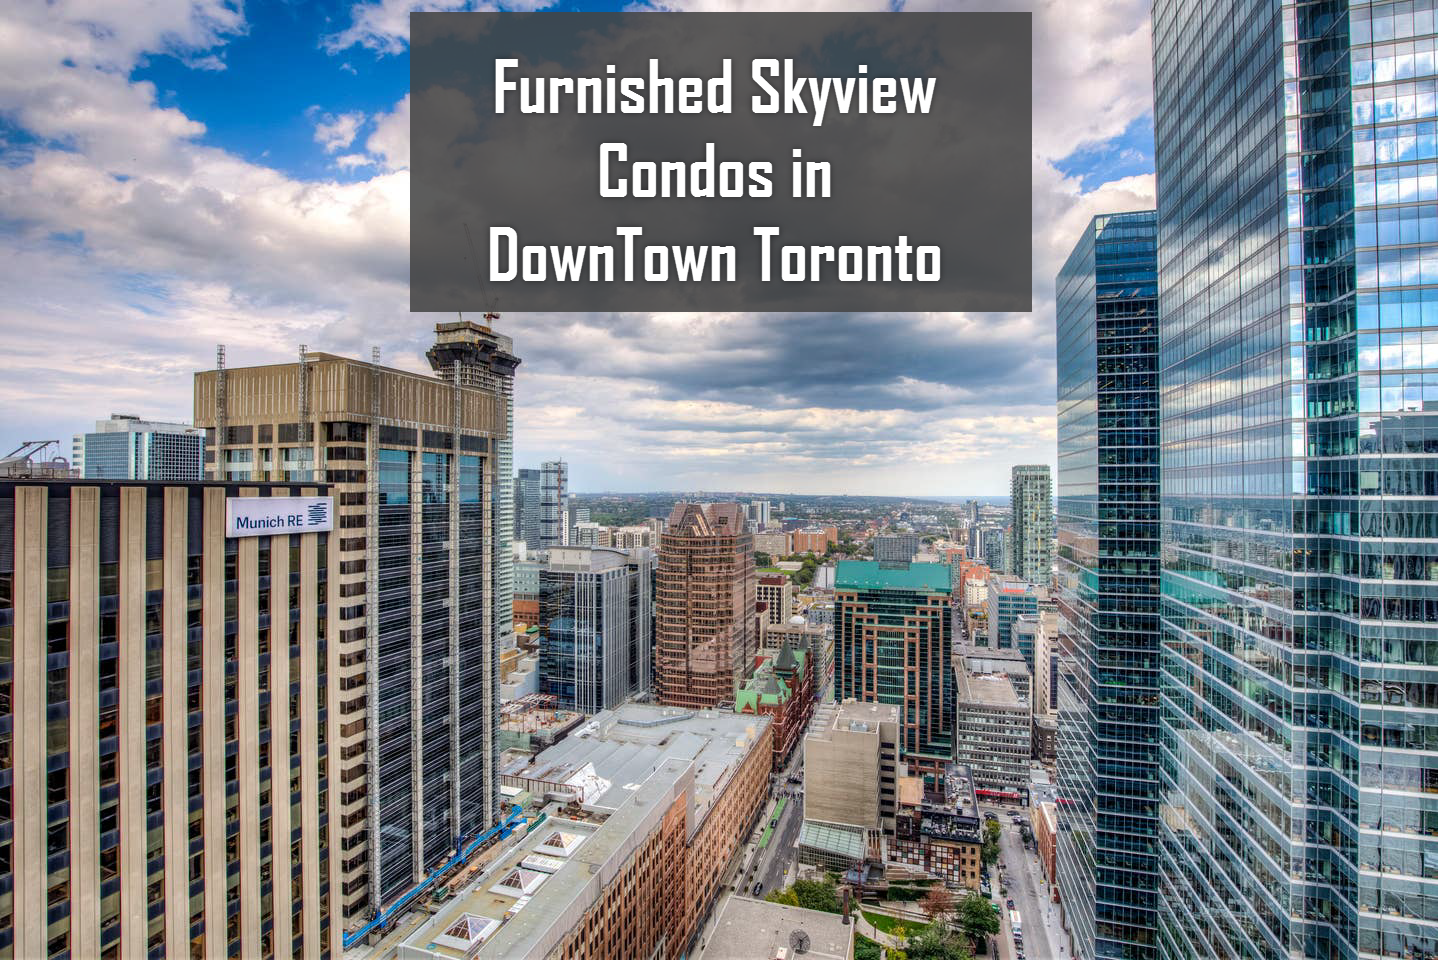 Furnished Sky-view condo in down town Toronto